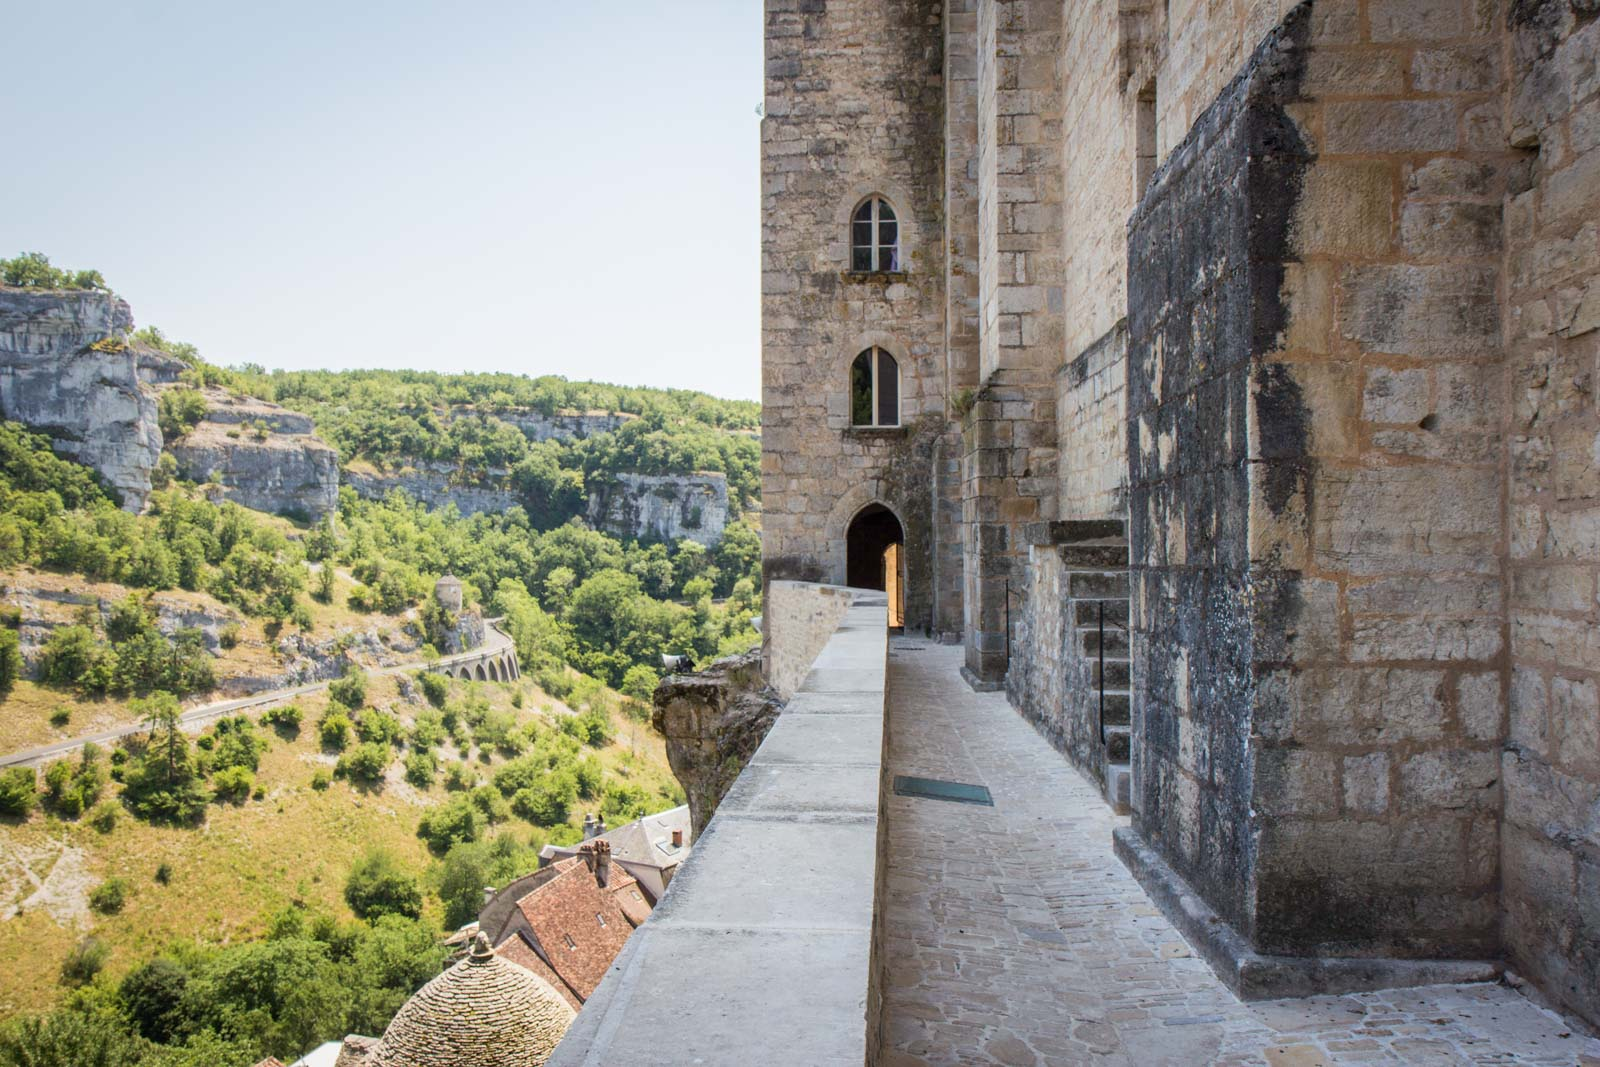 Visiting Rocamadour in France